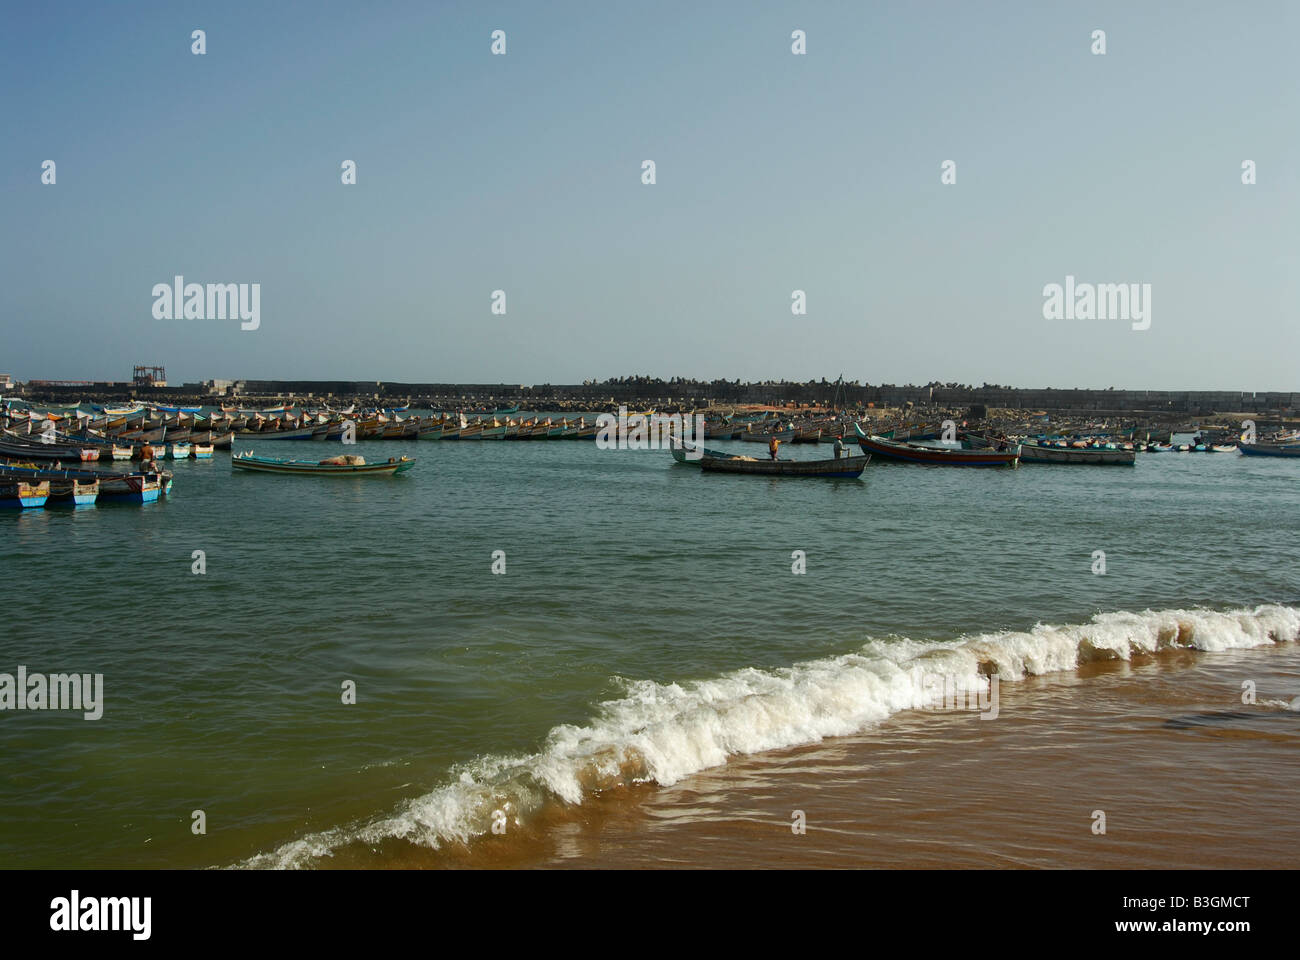 Vizhinjam harbor in Kerala,India - Stock Image